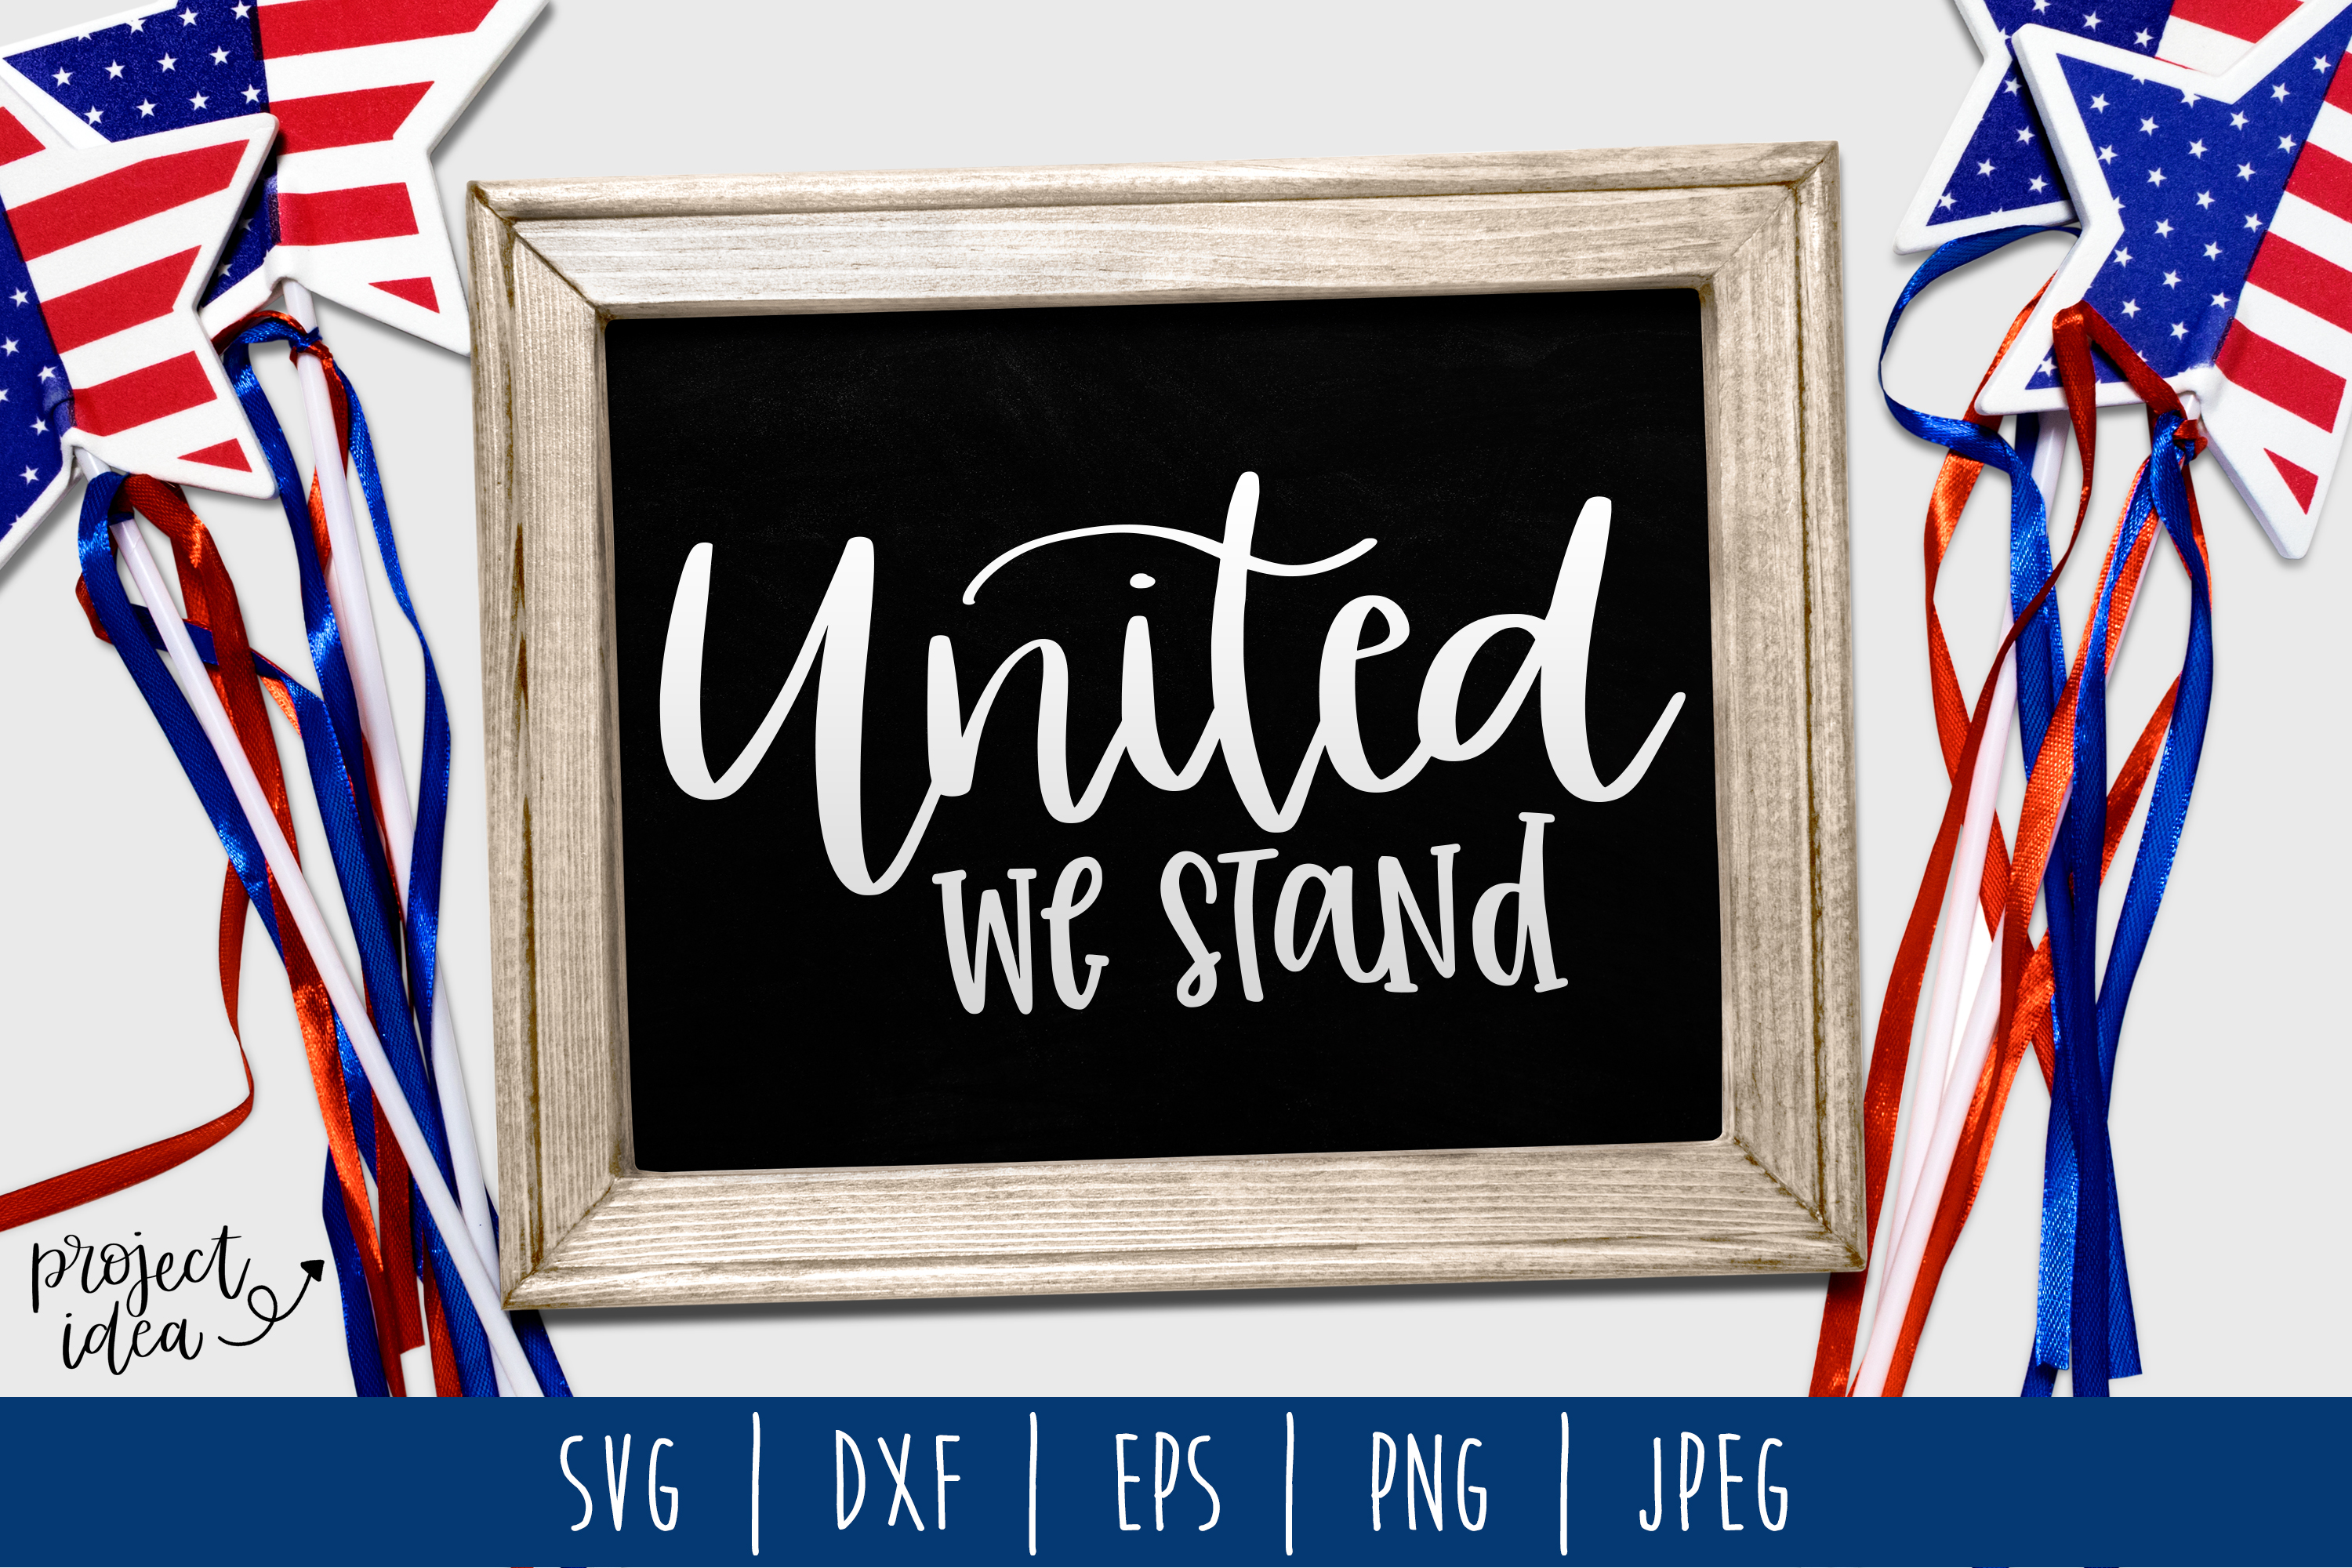 United We Stand SVG, DXF, EPS, PNG JPEG example image 1